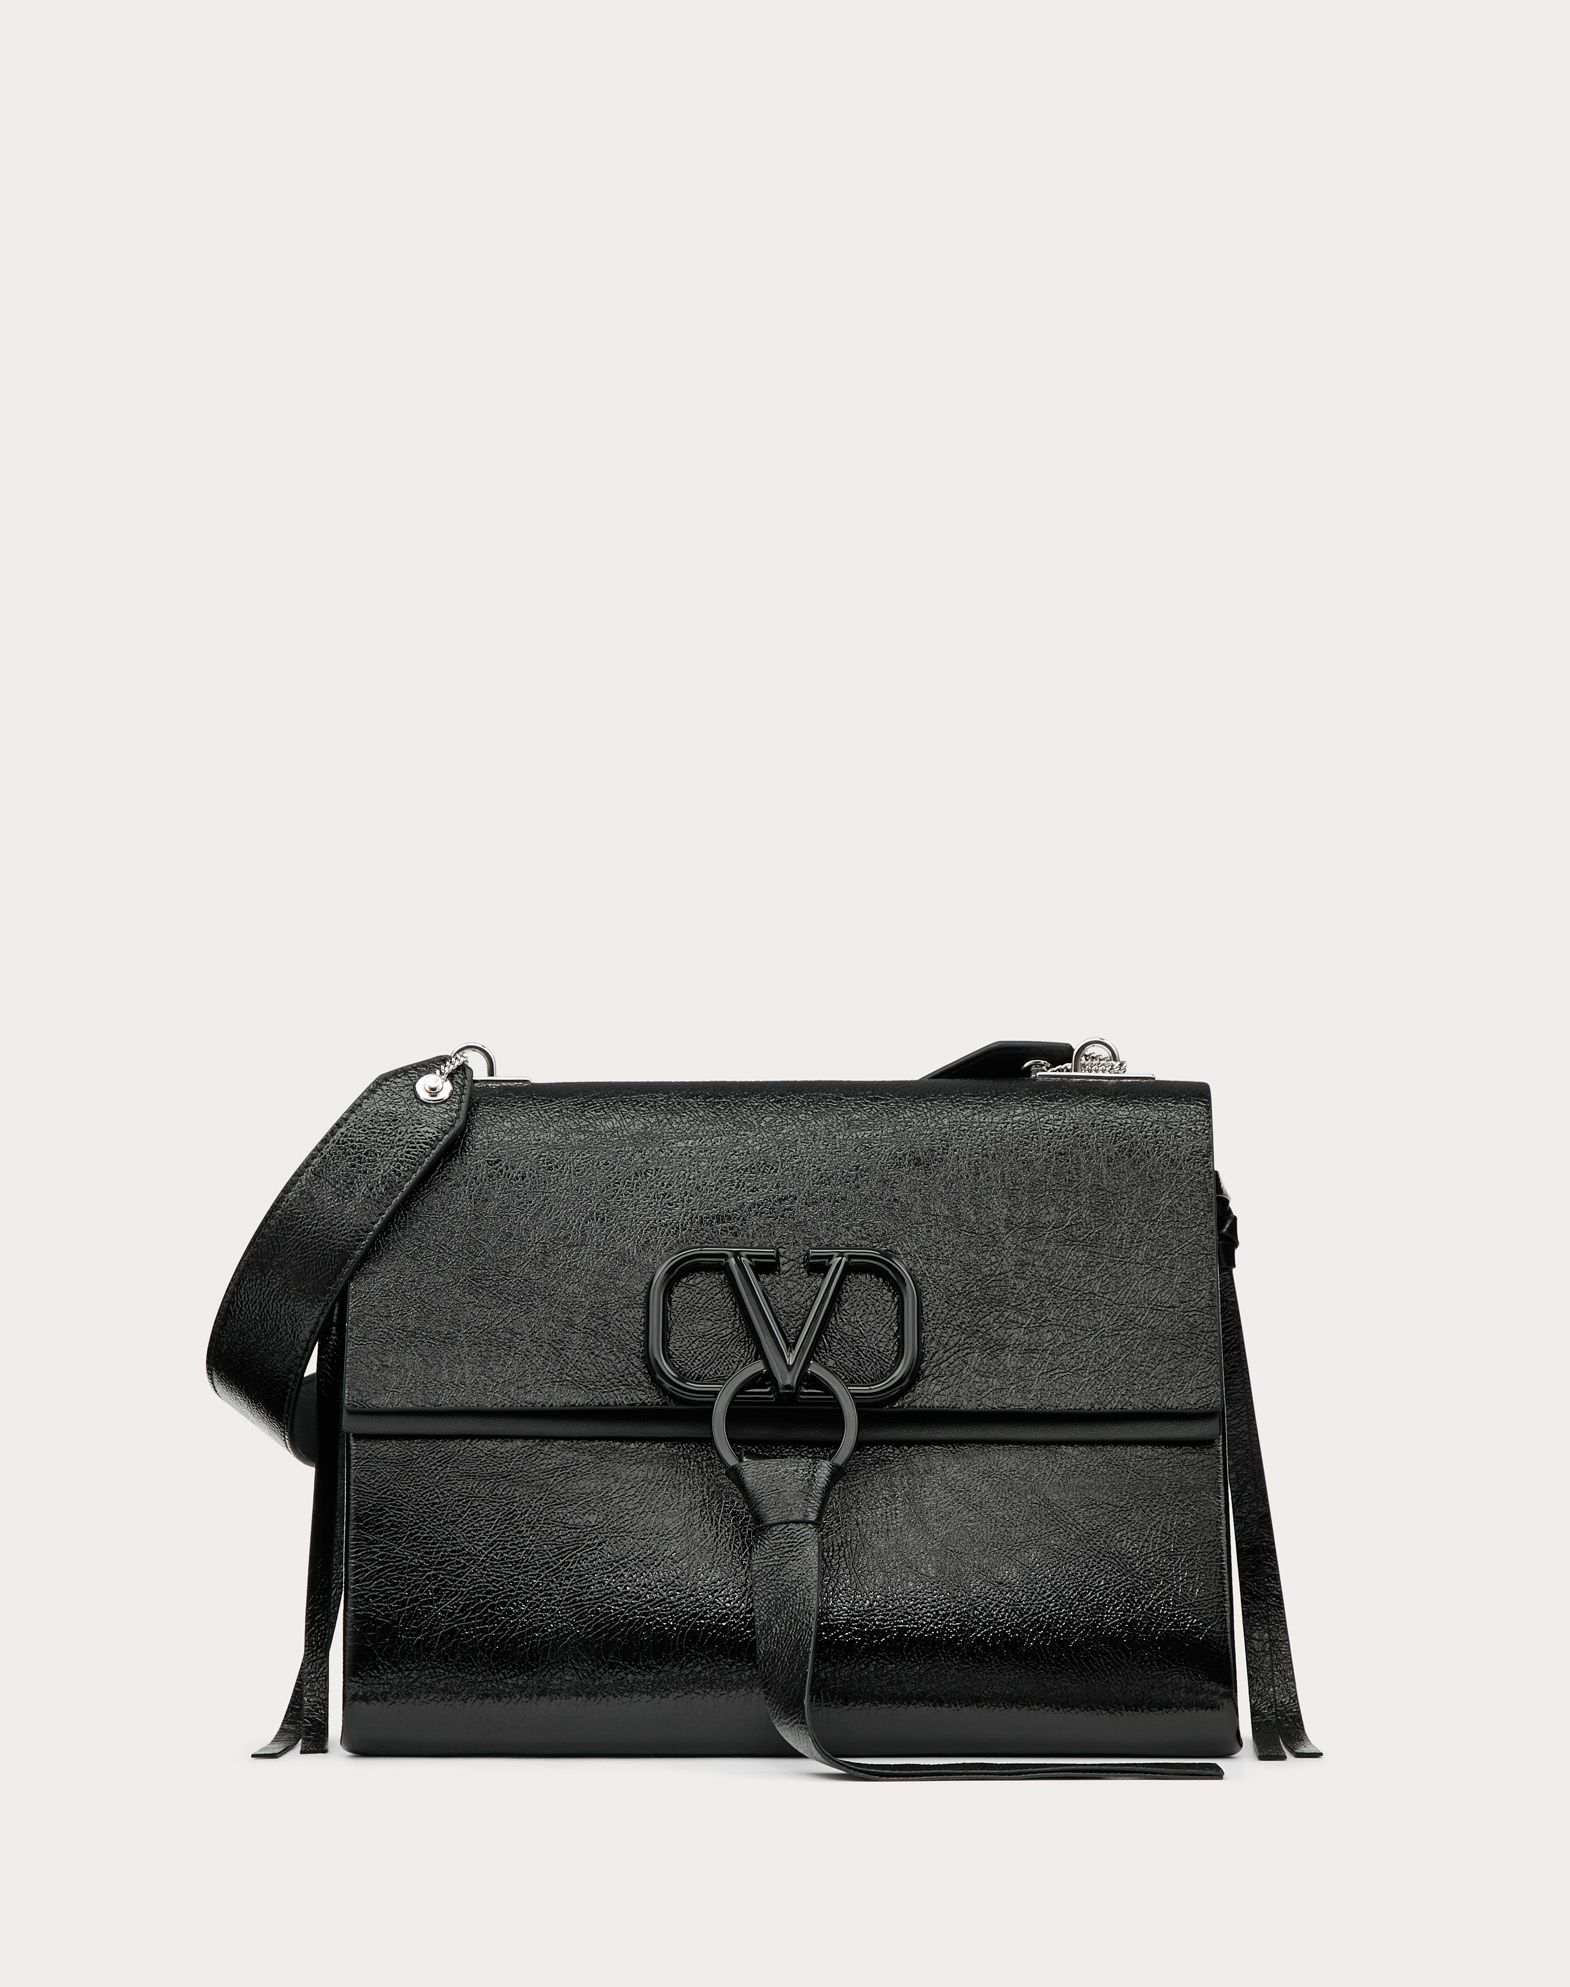 VRING Naplak Shoulder Bag